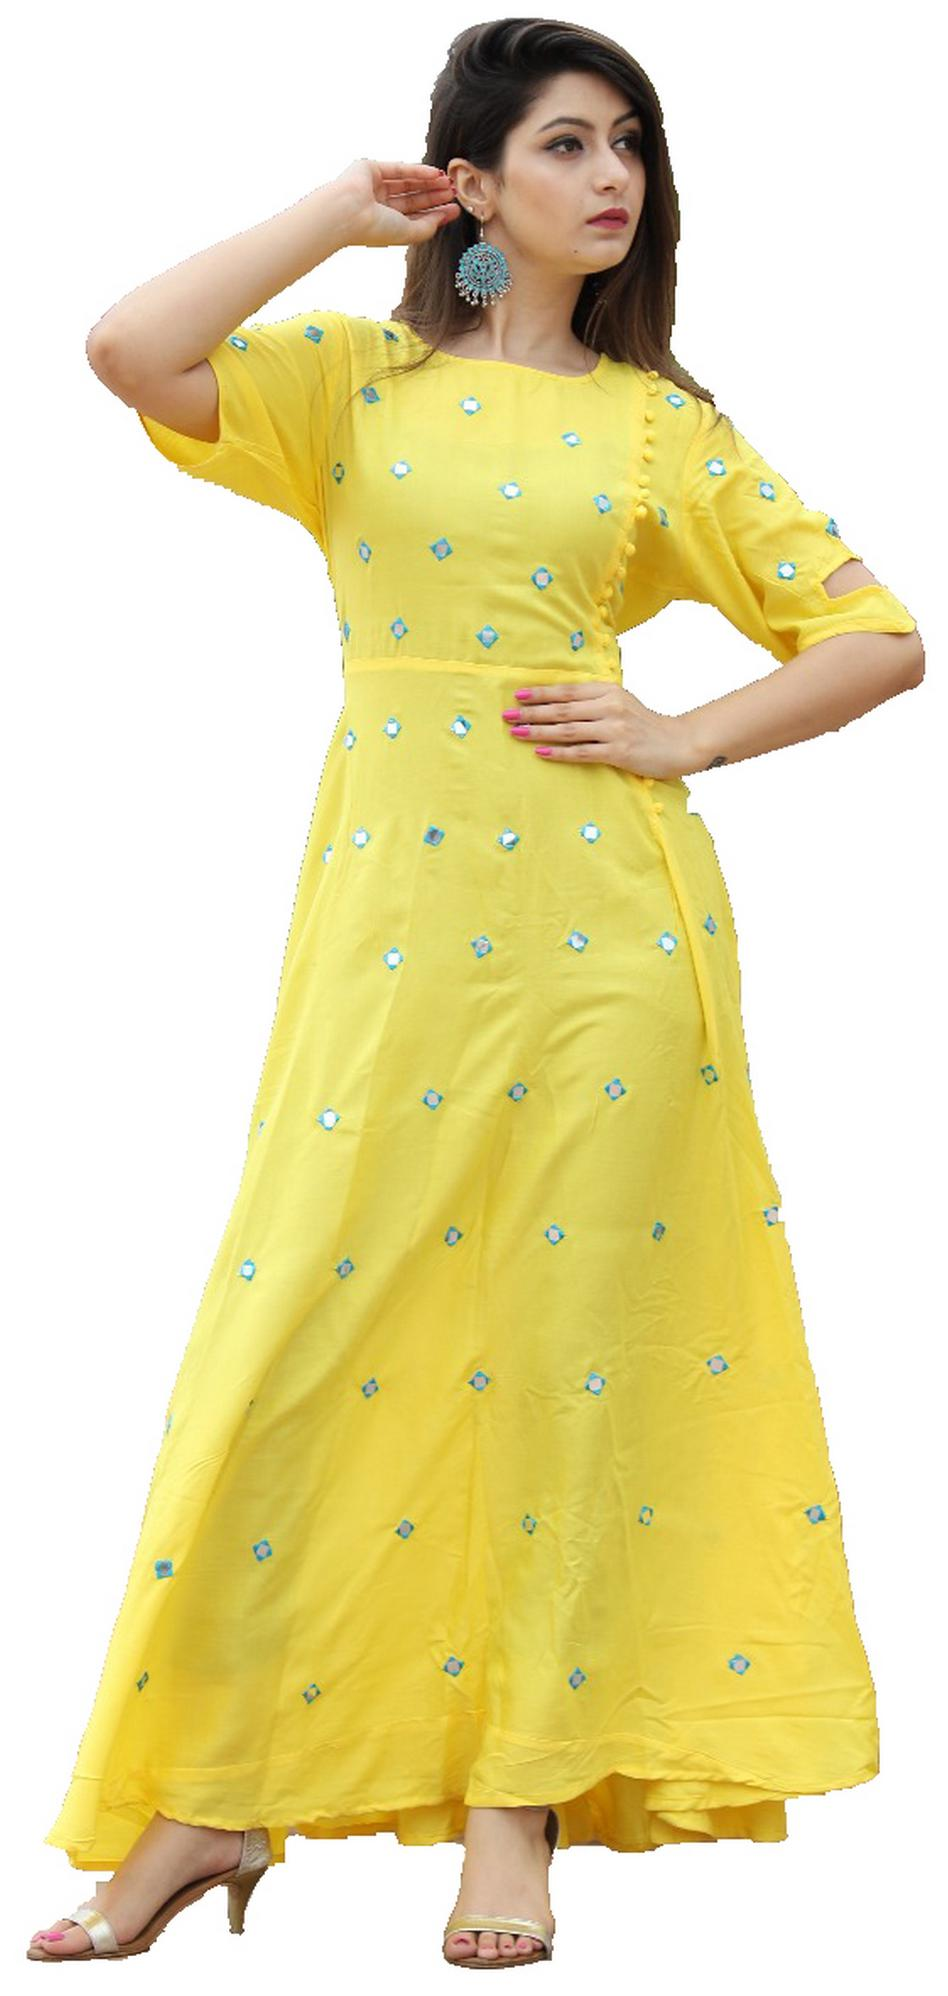 6th Avenue Yellow 3/4 Sleeve Rayon Kurti with Mirror Work - Large(40)